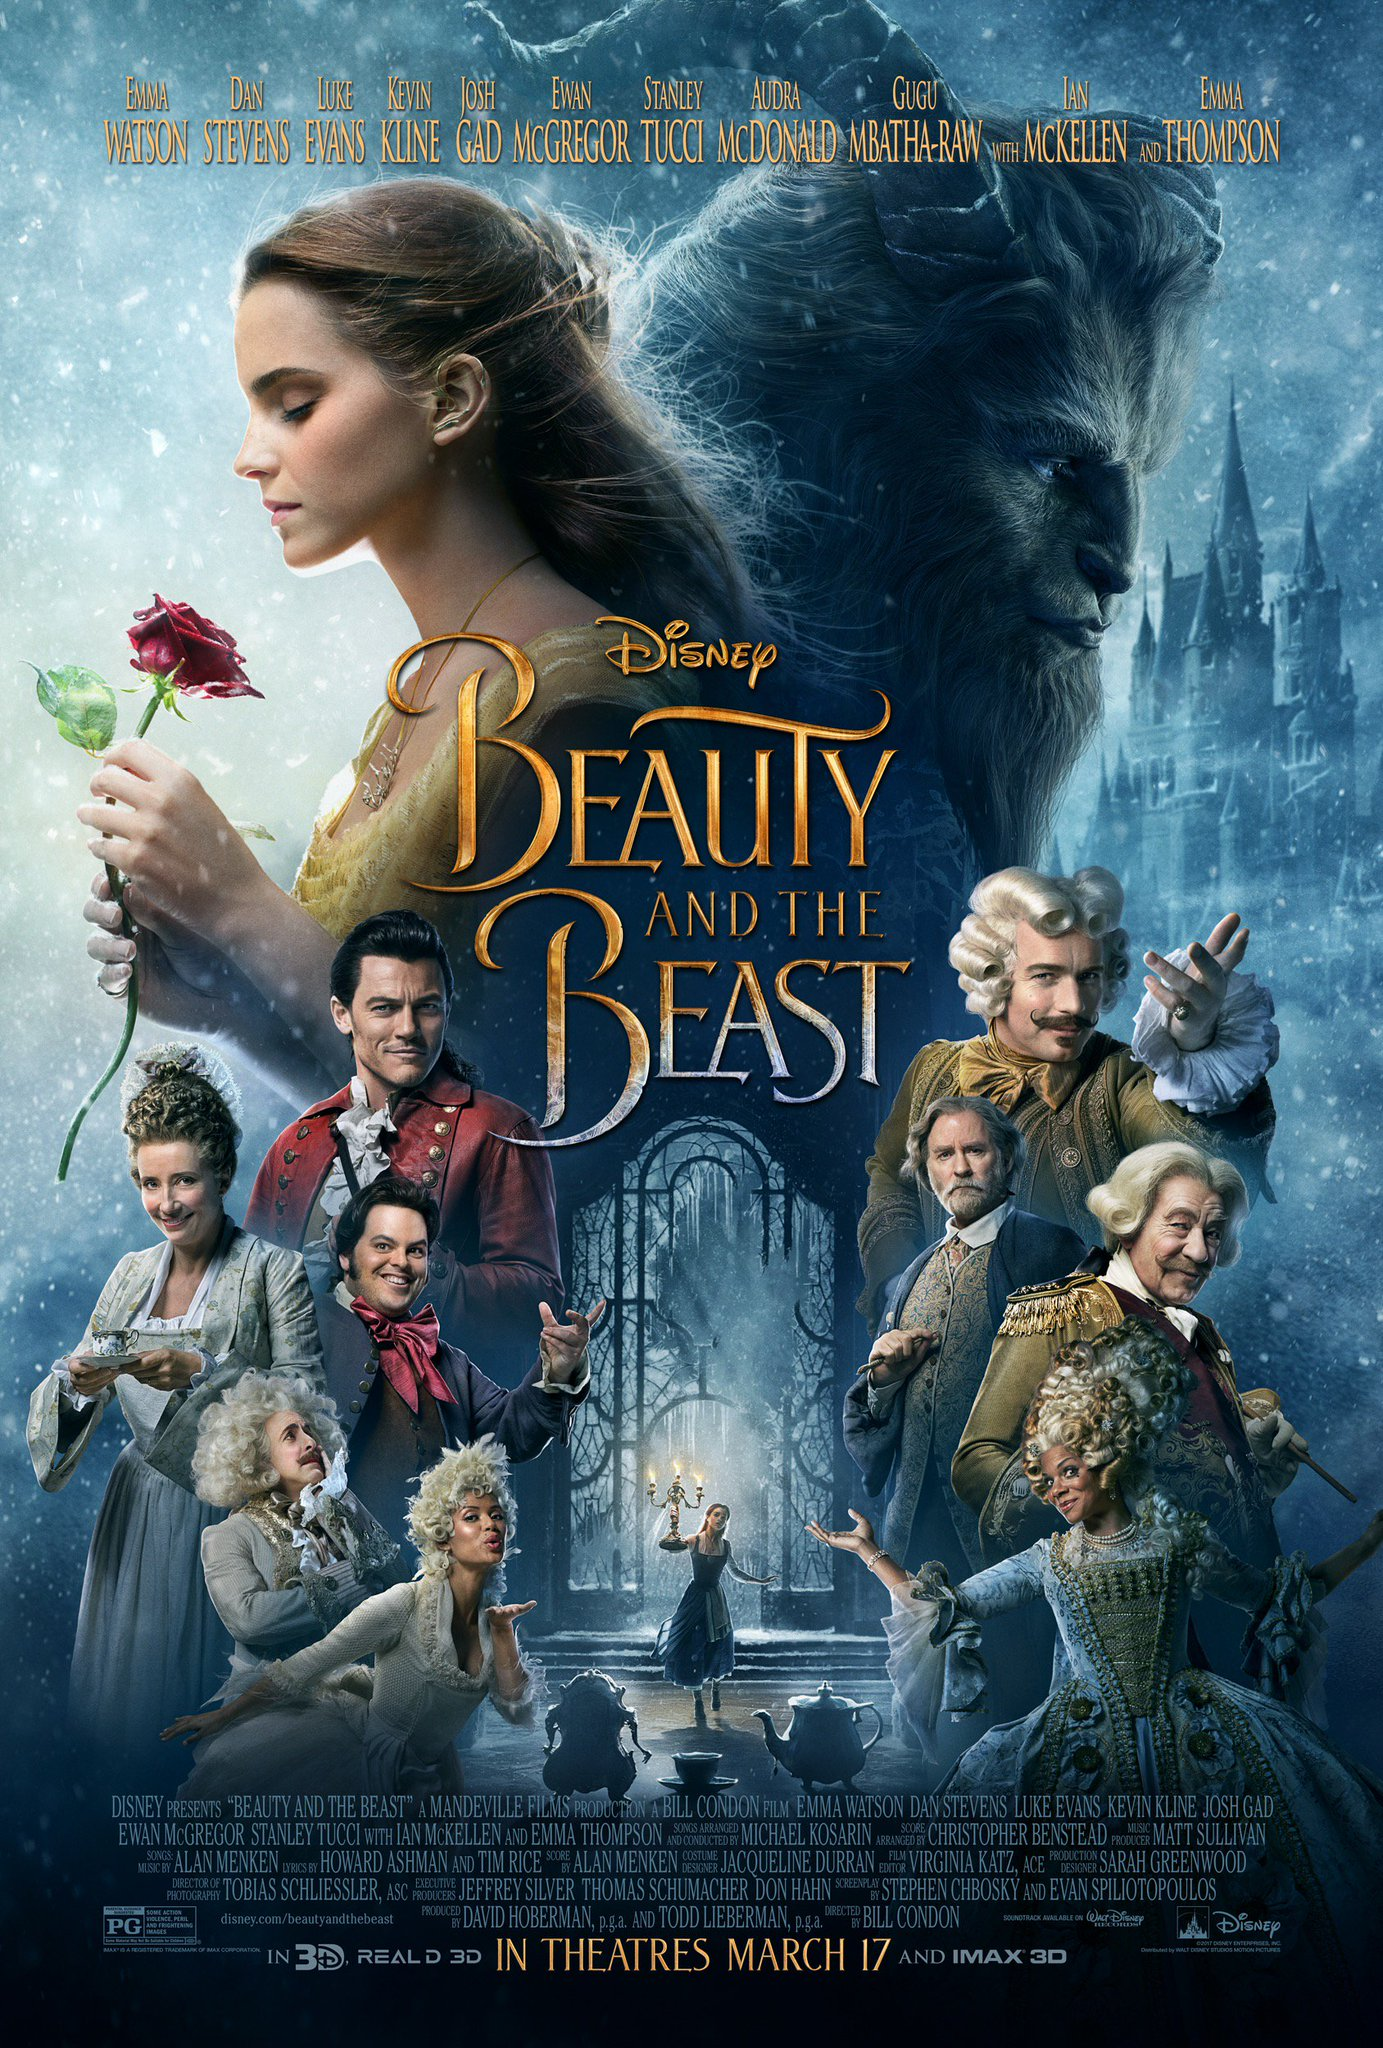 New poster for Beauty and the Beast! @beourguest �� https://t.co/iE6YzVCKus